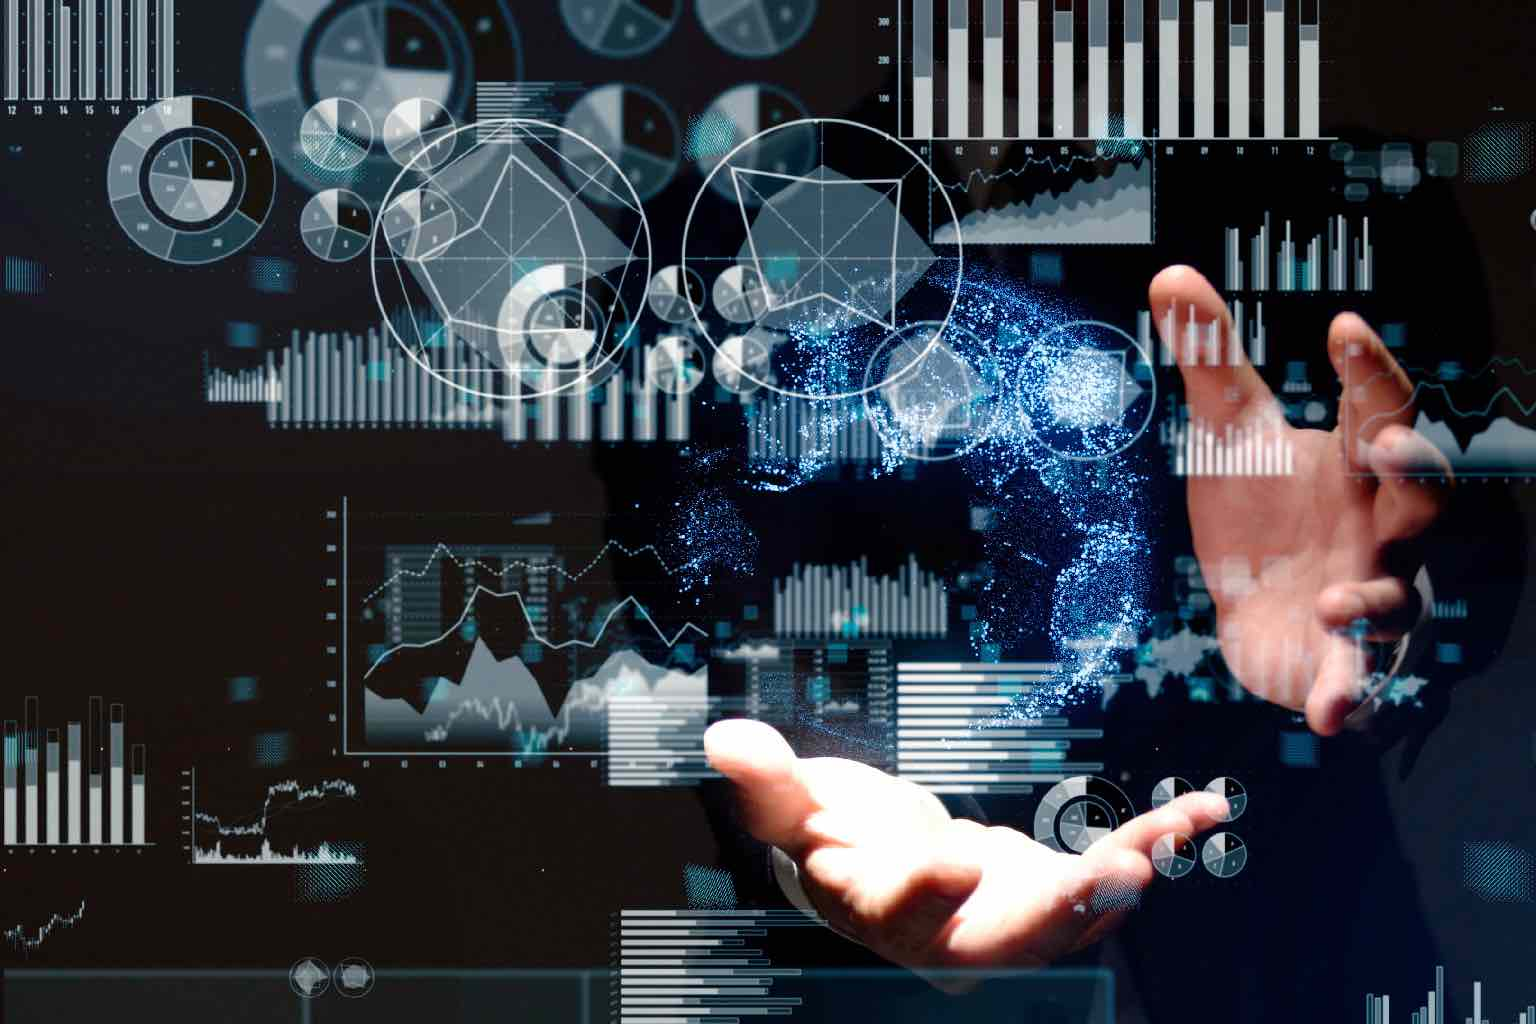 Science technology concept. Scientist's open hands manipulating augment reality data readout.